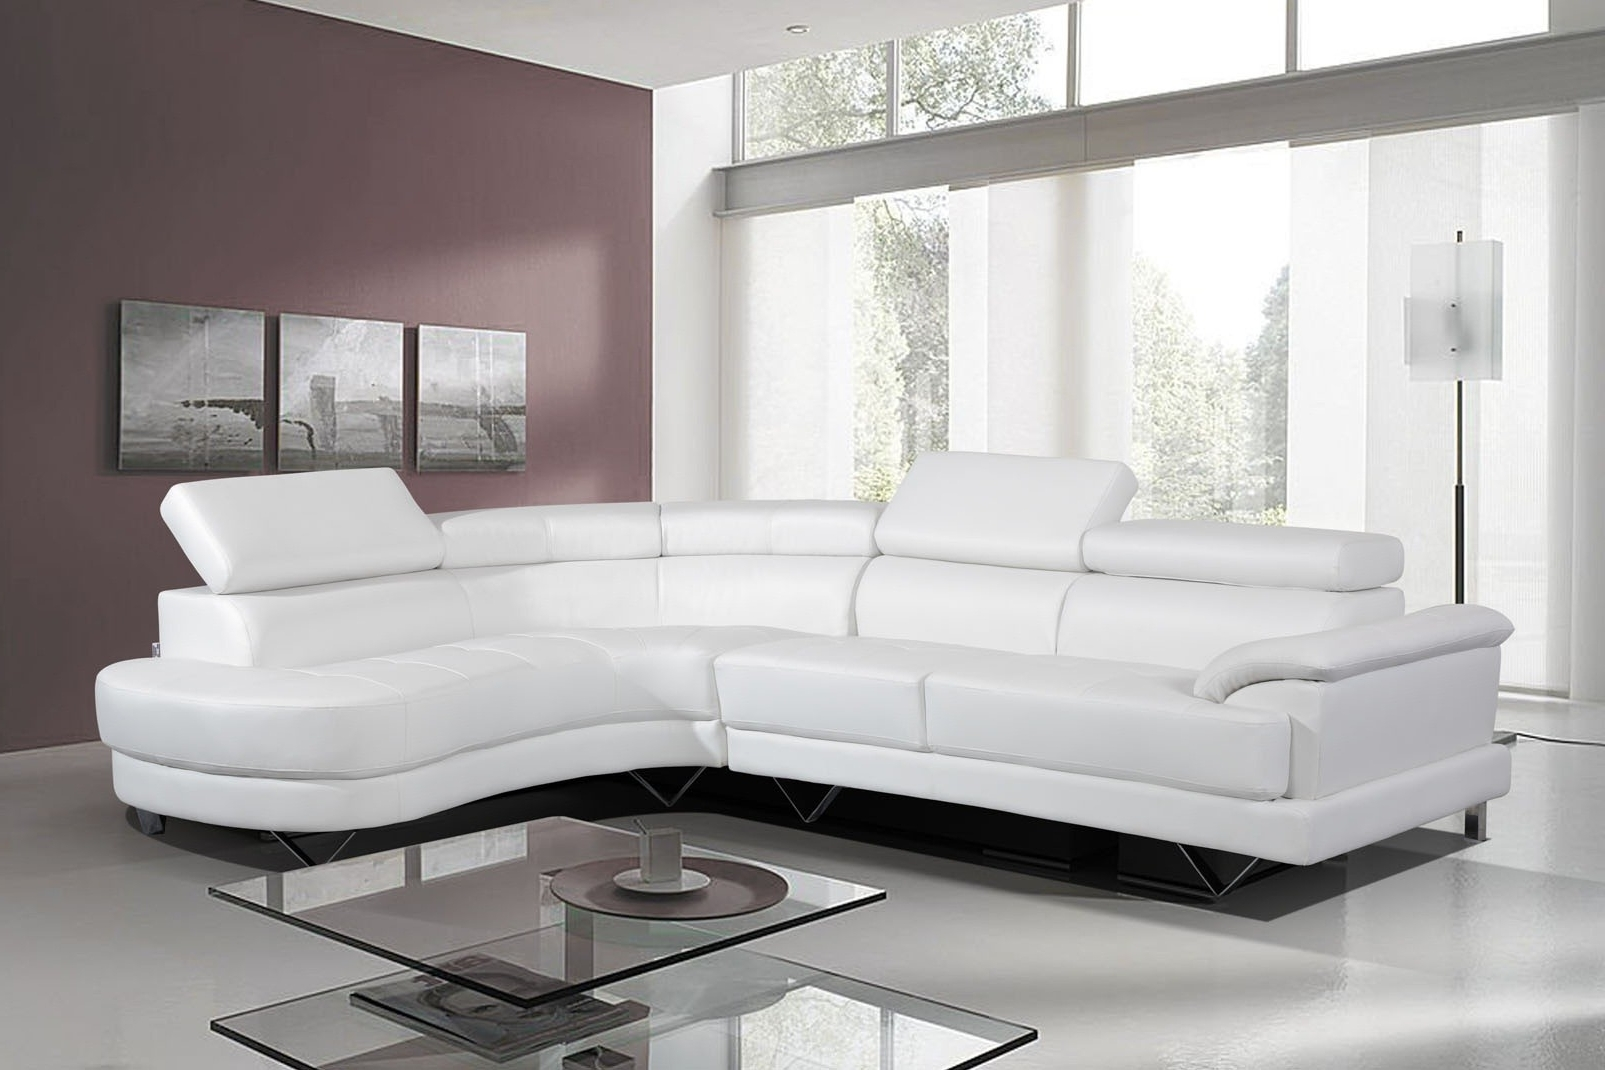 Fashionable Sectional Sofas At Ebay For Ebay Sofas – Mforum (View 10 of 20)